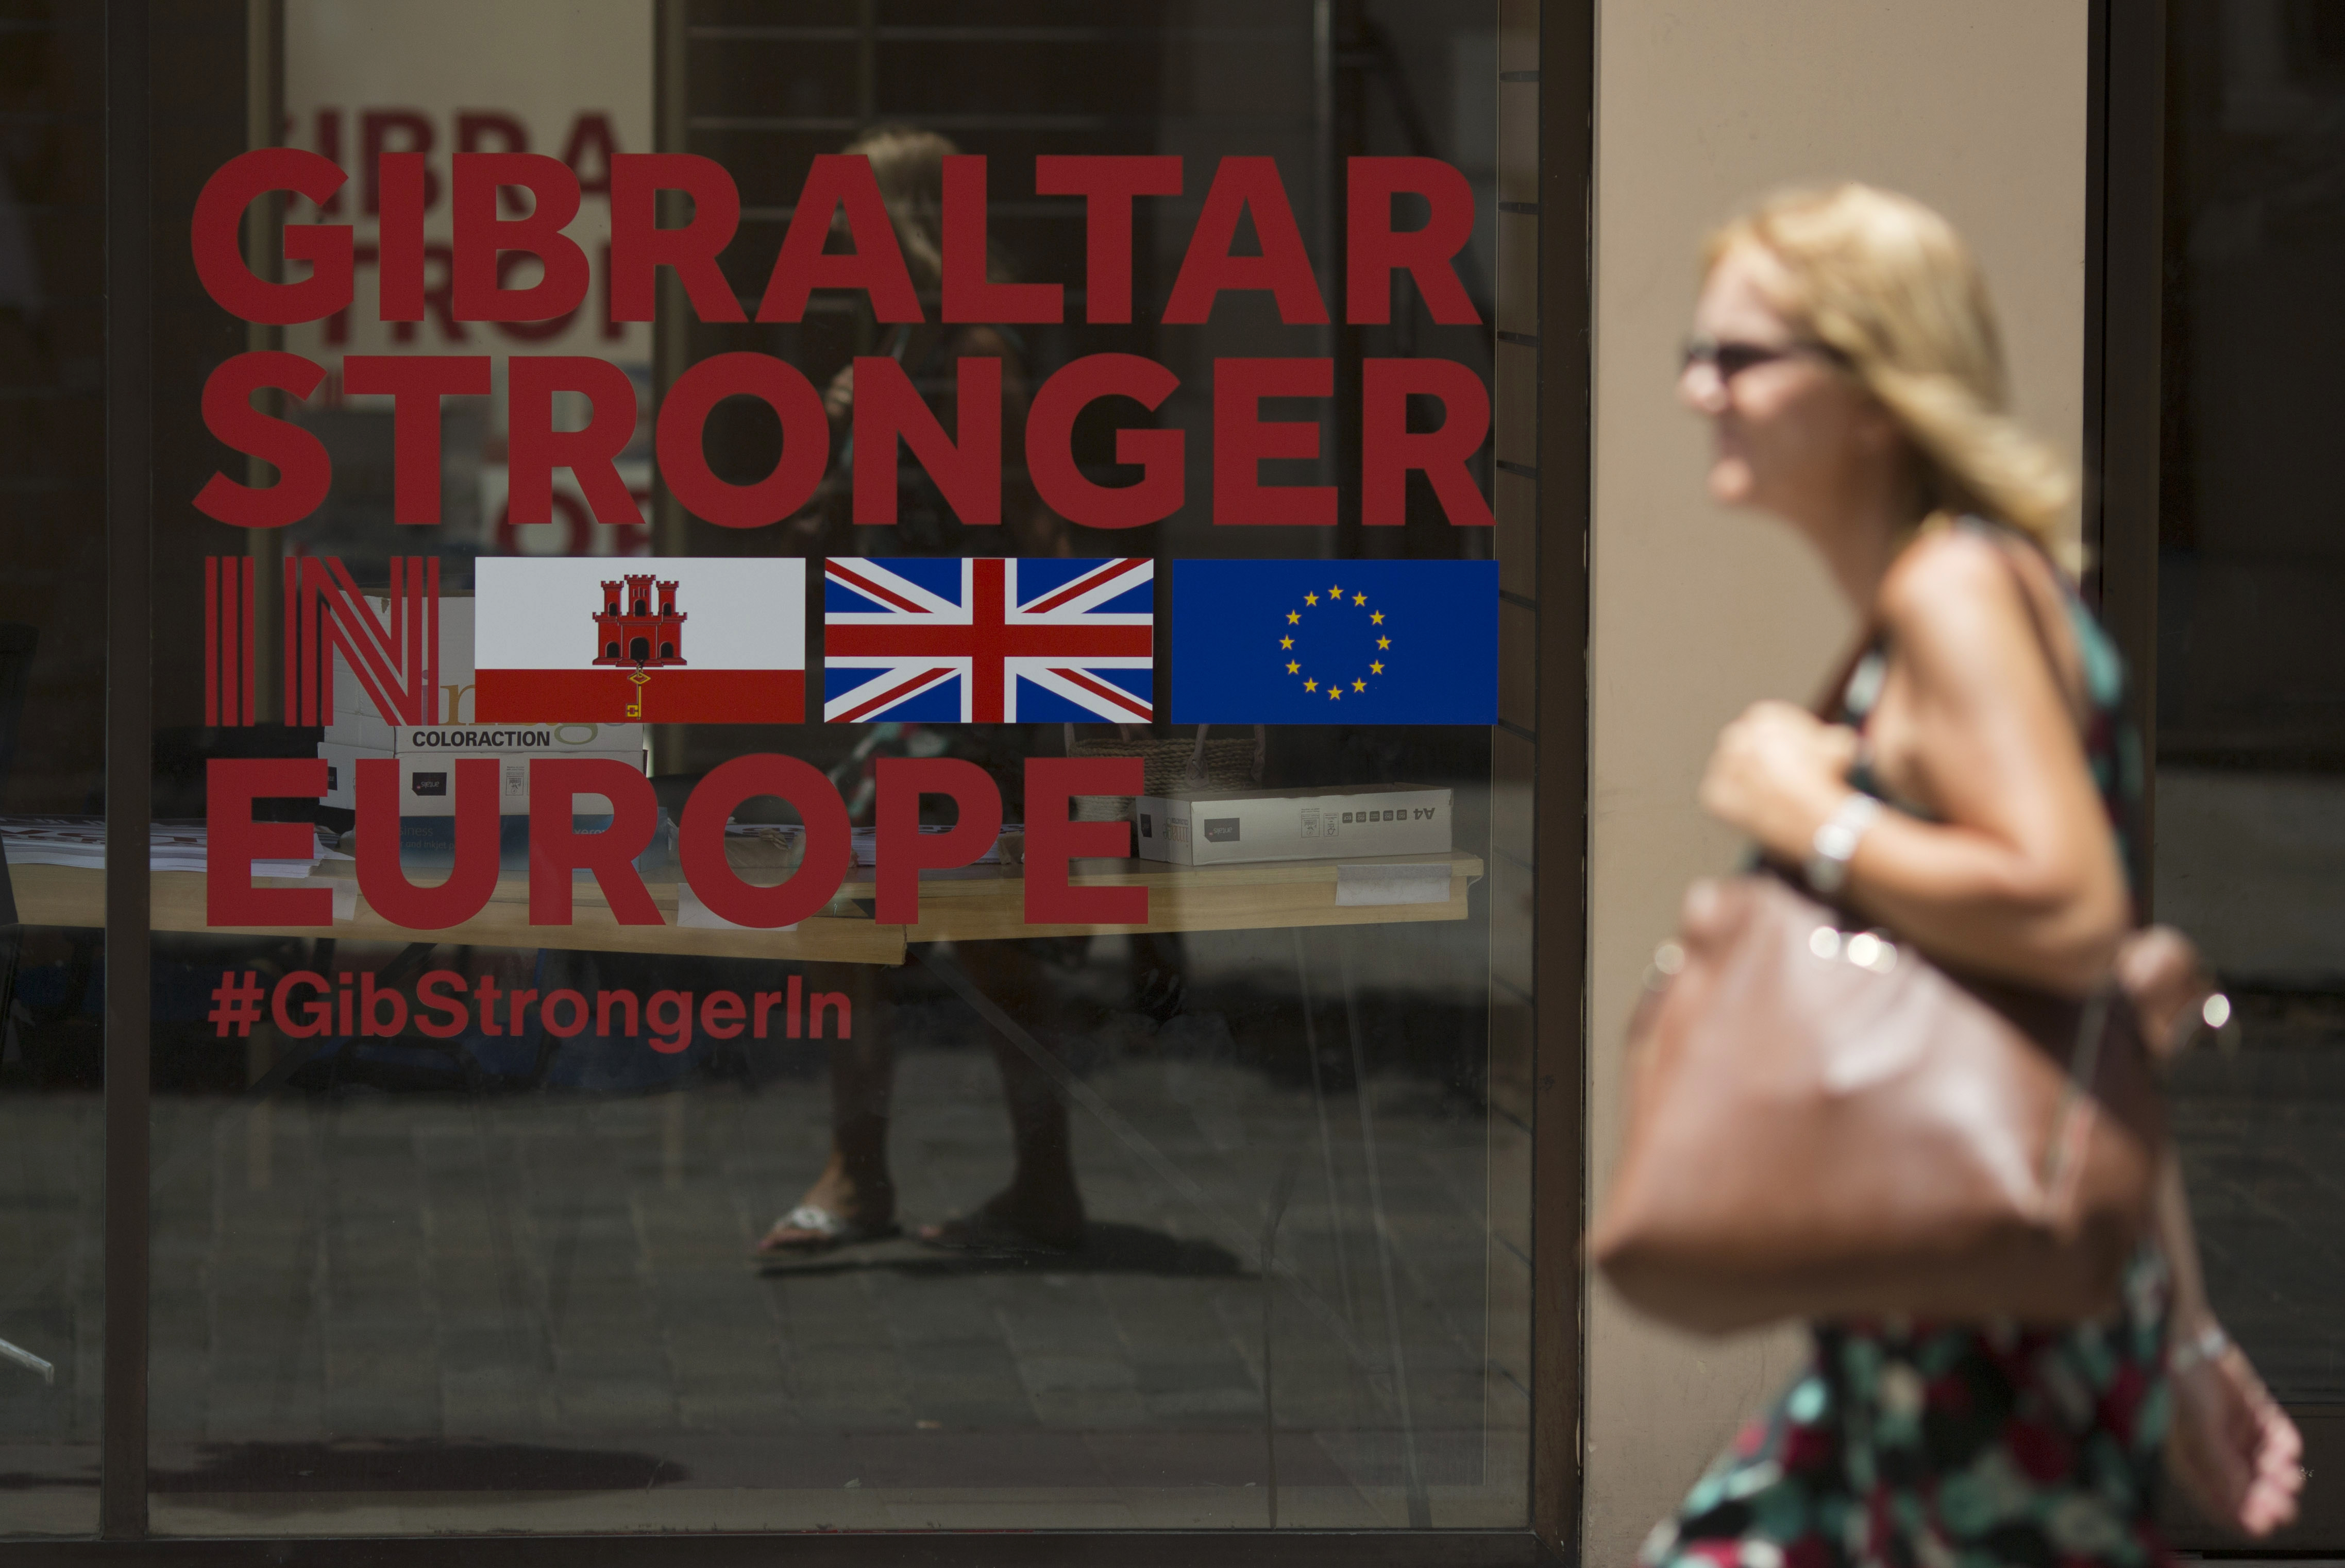 A woman passes by a Remain campaign office one day after after Britain voted to exit the European Union, in Gibraltar on June 24, 2016.   Spain said on June 24, 2016 it was closer to asserting control over Gibraltar after Britain voted to leave the European Union, prompting London to jump to the defence of its overseas territory. / AFP PHOTO / SERGIO CAMACHO